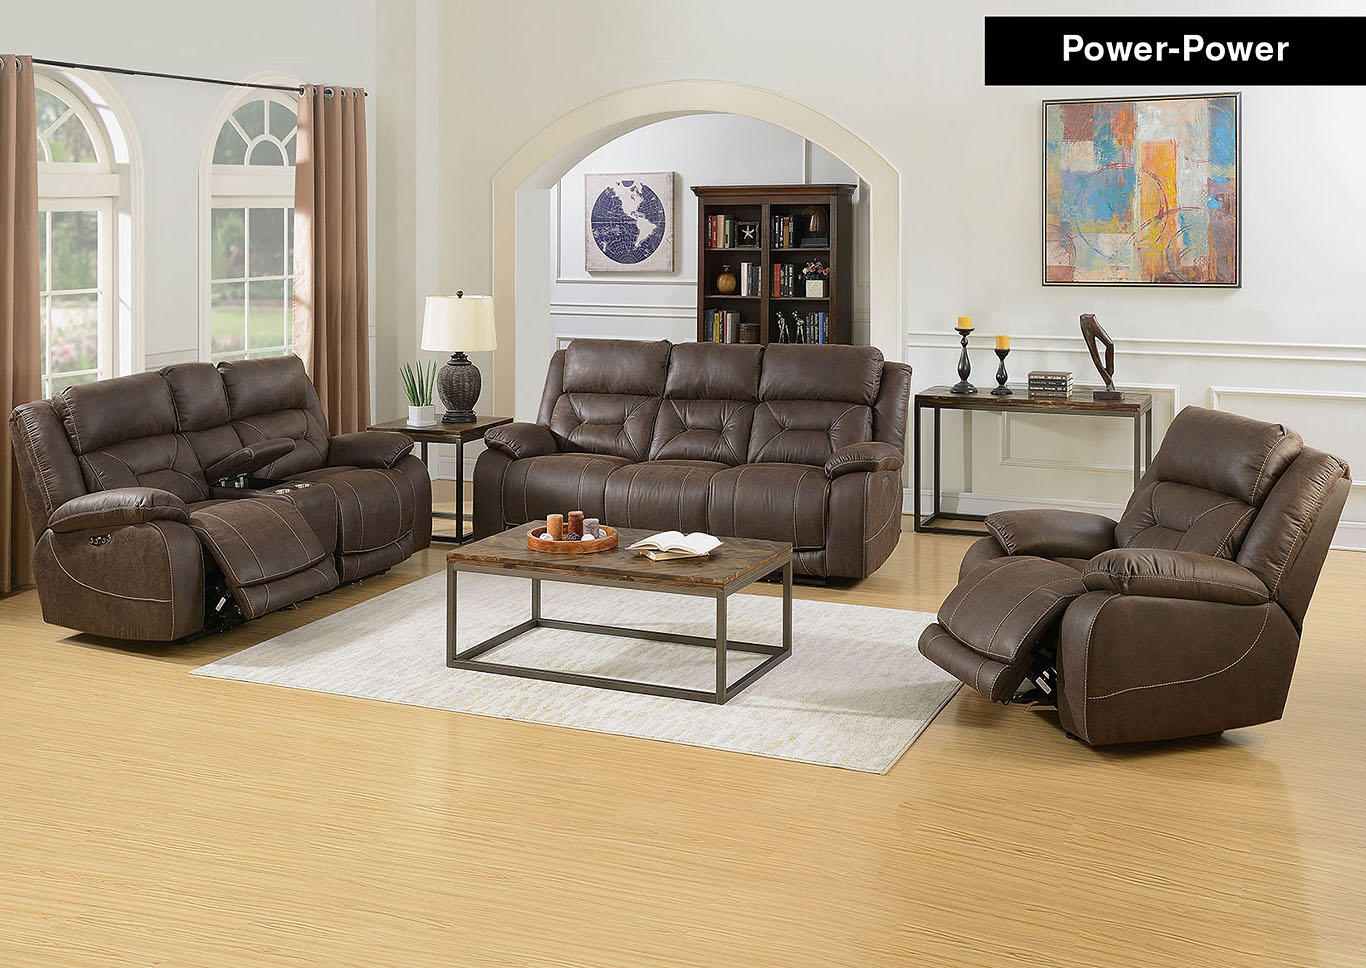 Aria Saddle Brown Power-2 Recliner Sofa & Armchair,Steve Silver